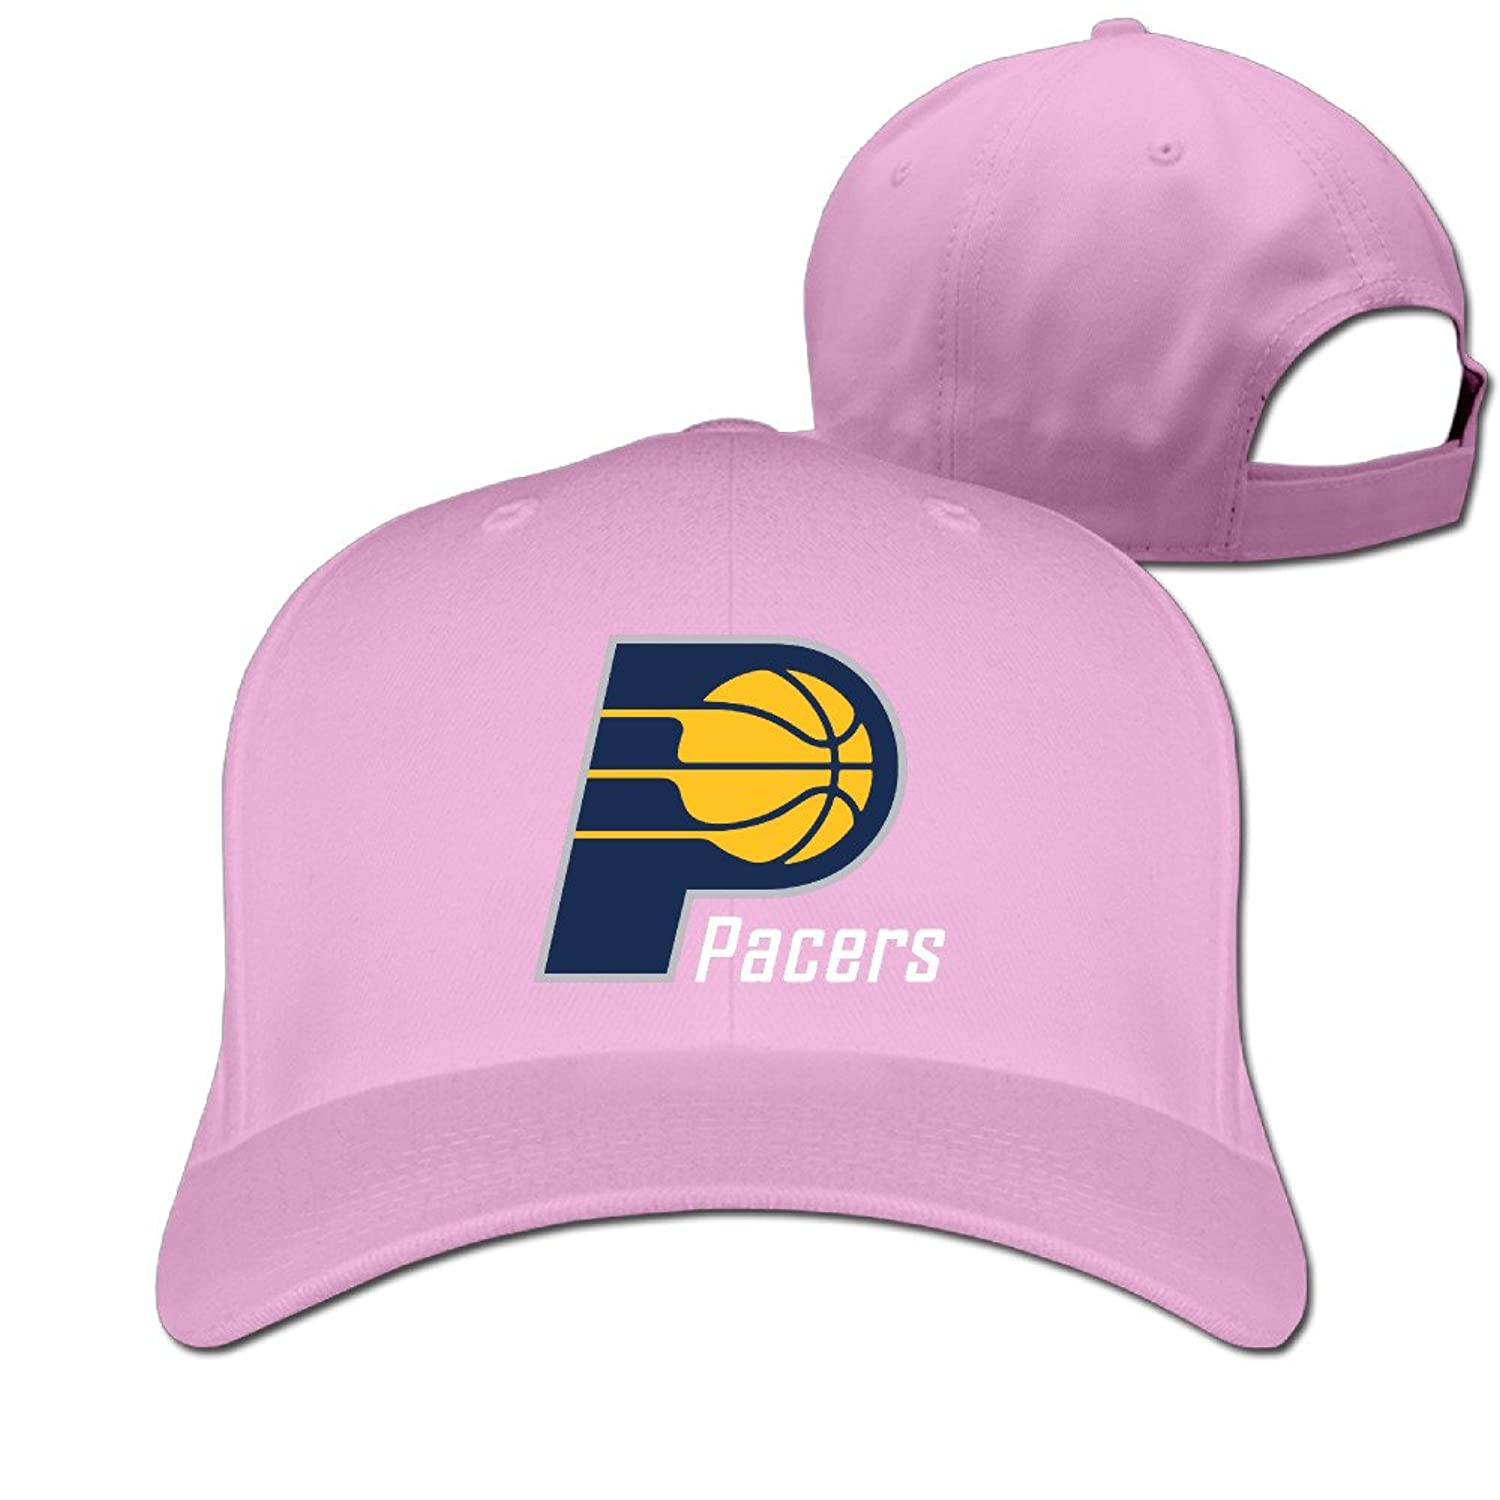 Ash Soft Knit Hats Indiana Pacers For Unisex